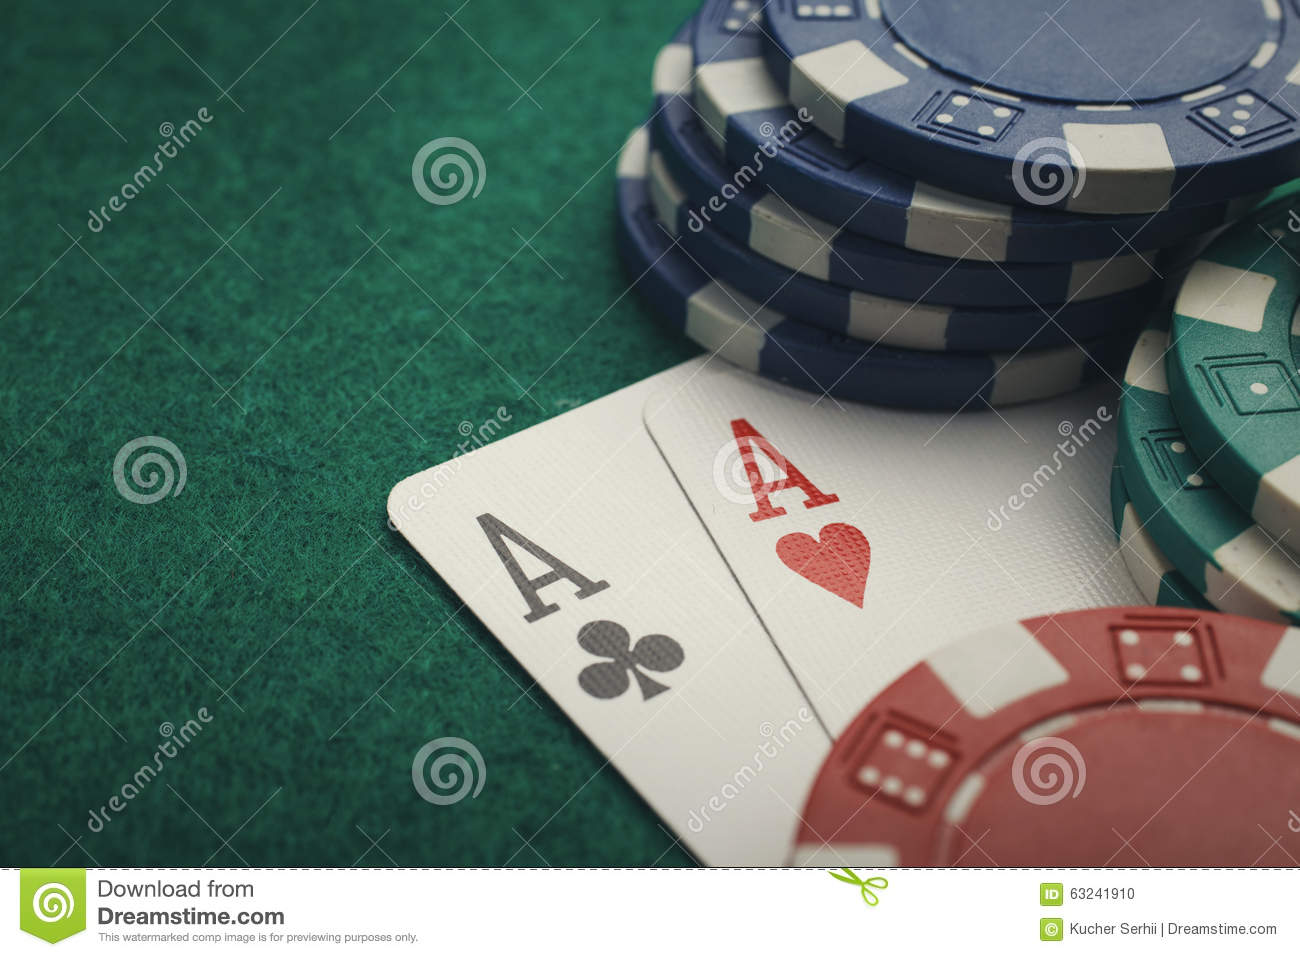 what are two aces in poker